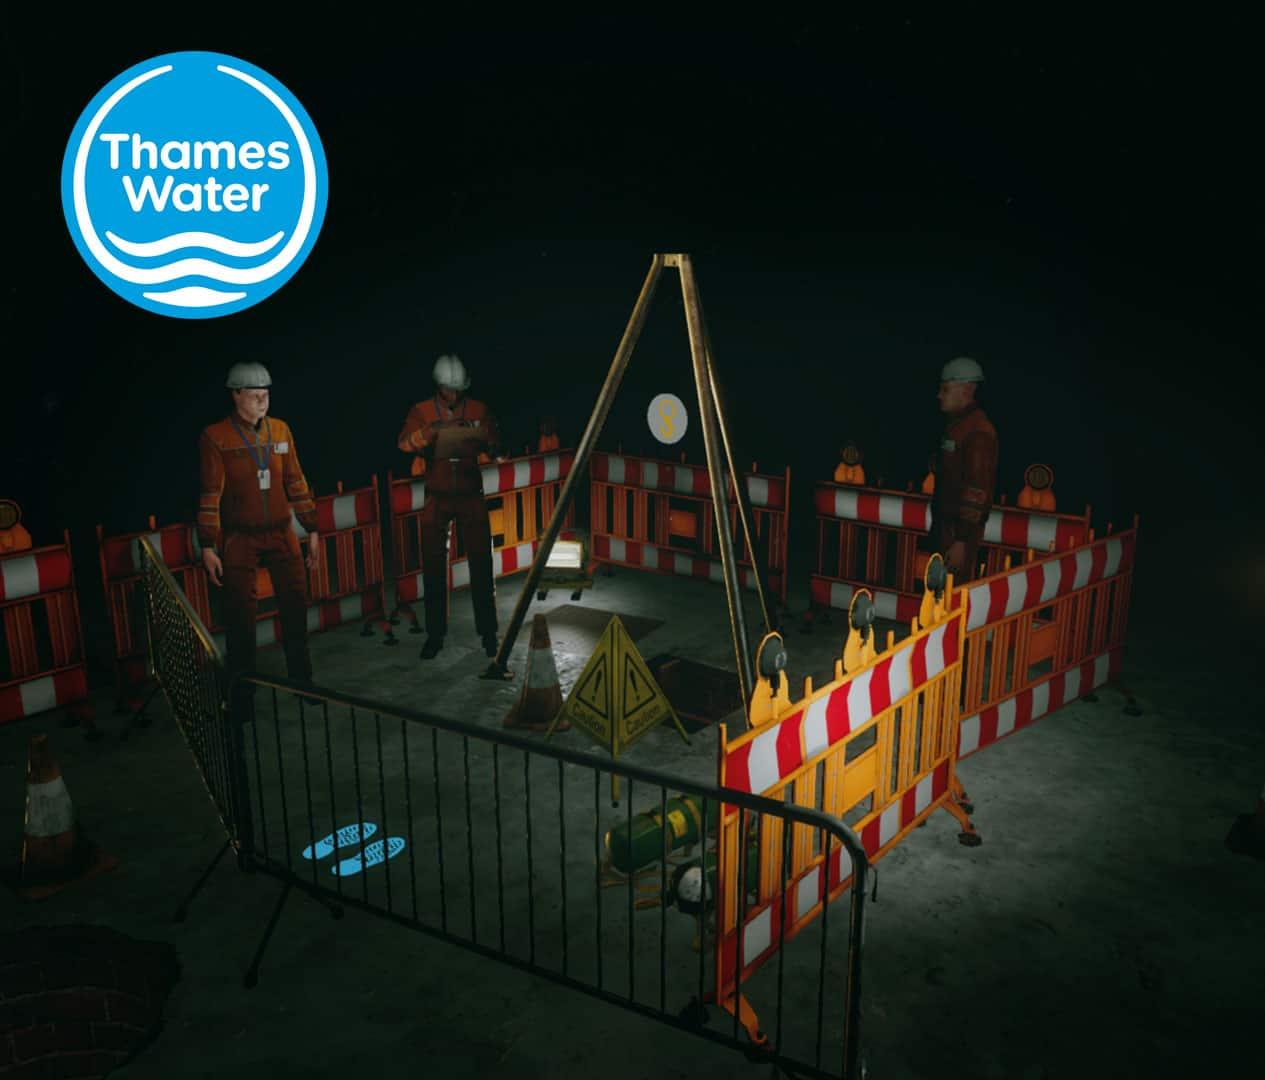 Thames Water VR